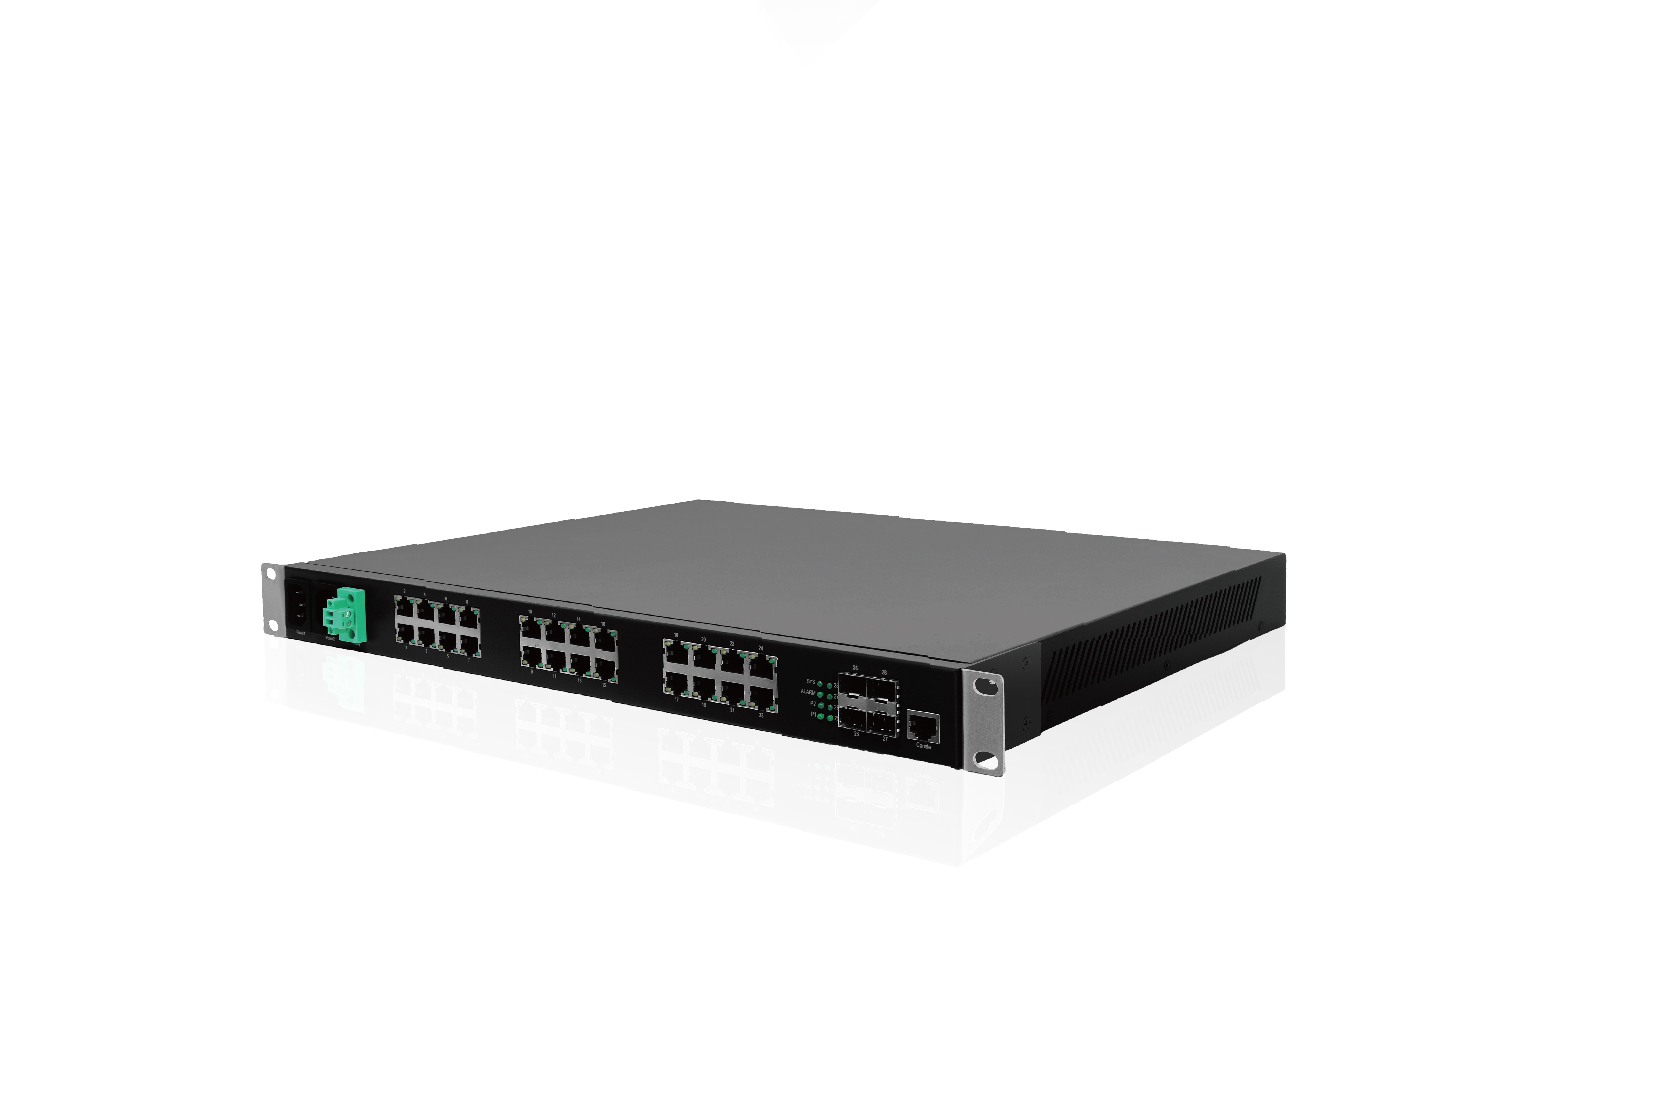 Rack type industrial grade network management switch